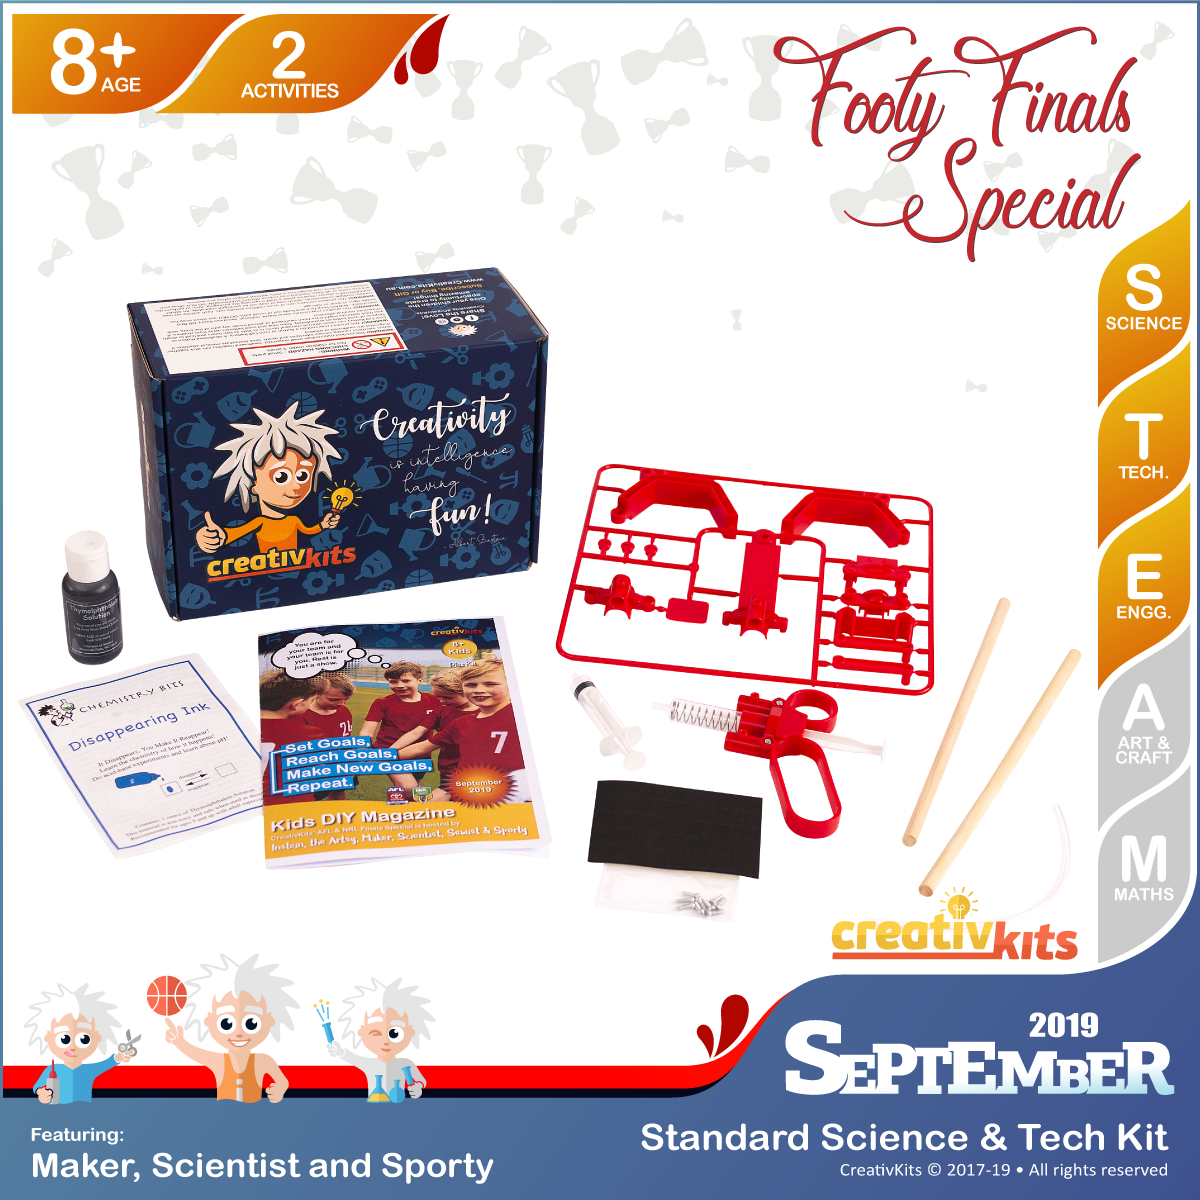 September Standard Science & Tech. Kit • Age 8 plus • BYO Hydraulic Arm and Disappearing Spy Ink